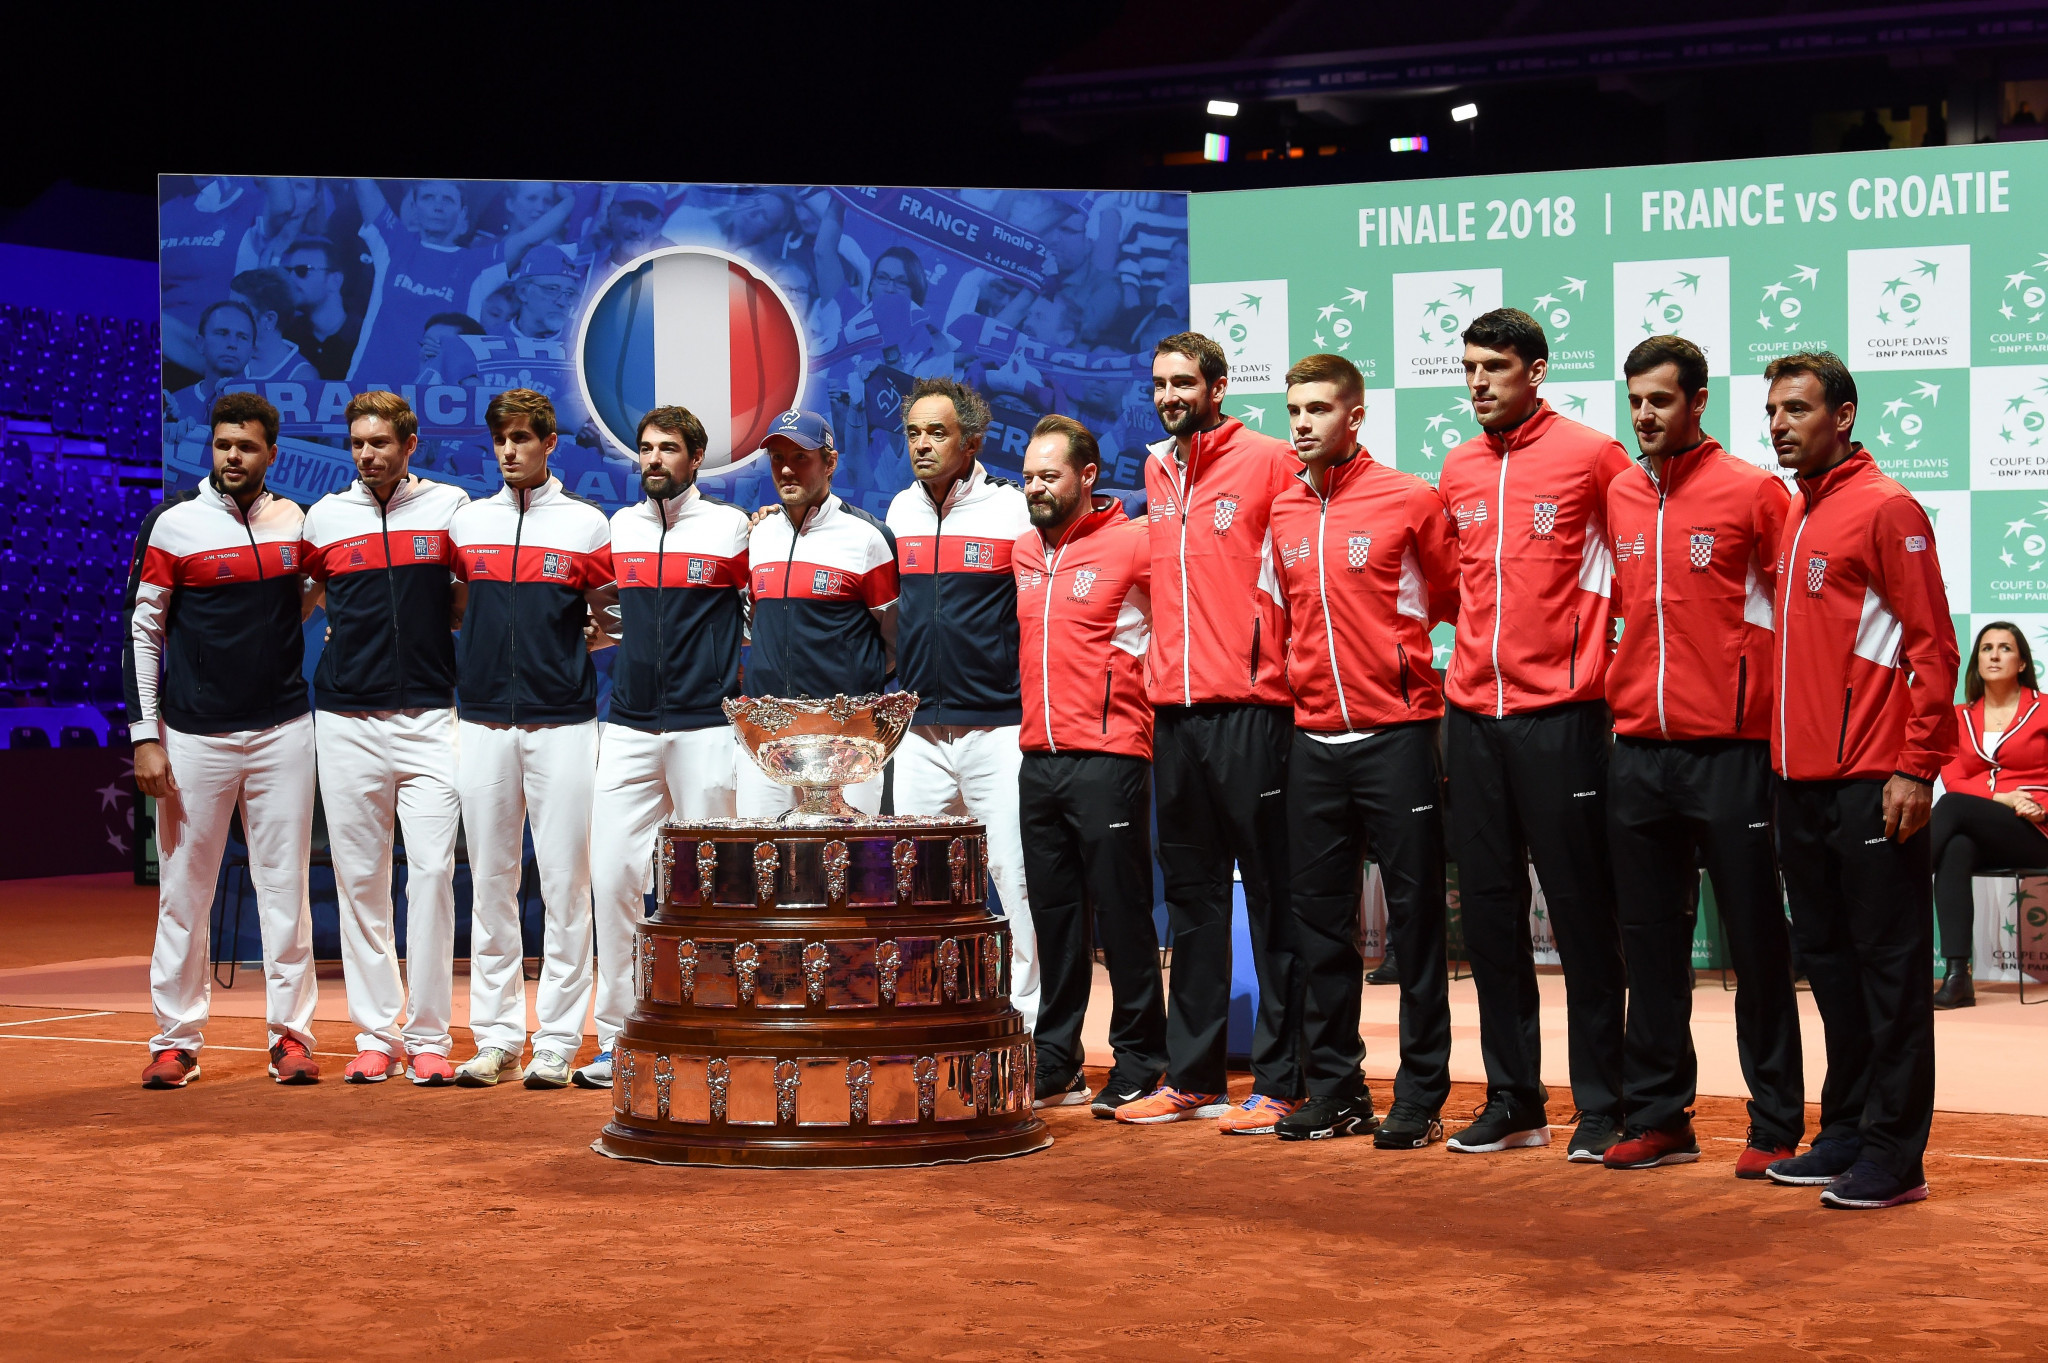 France and Croatia will battle it out in an historic Davis Cup final in Lille ©Getty Images